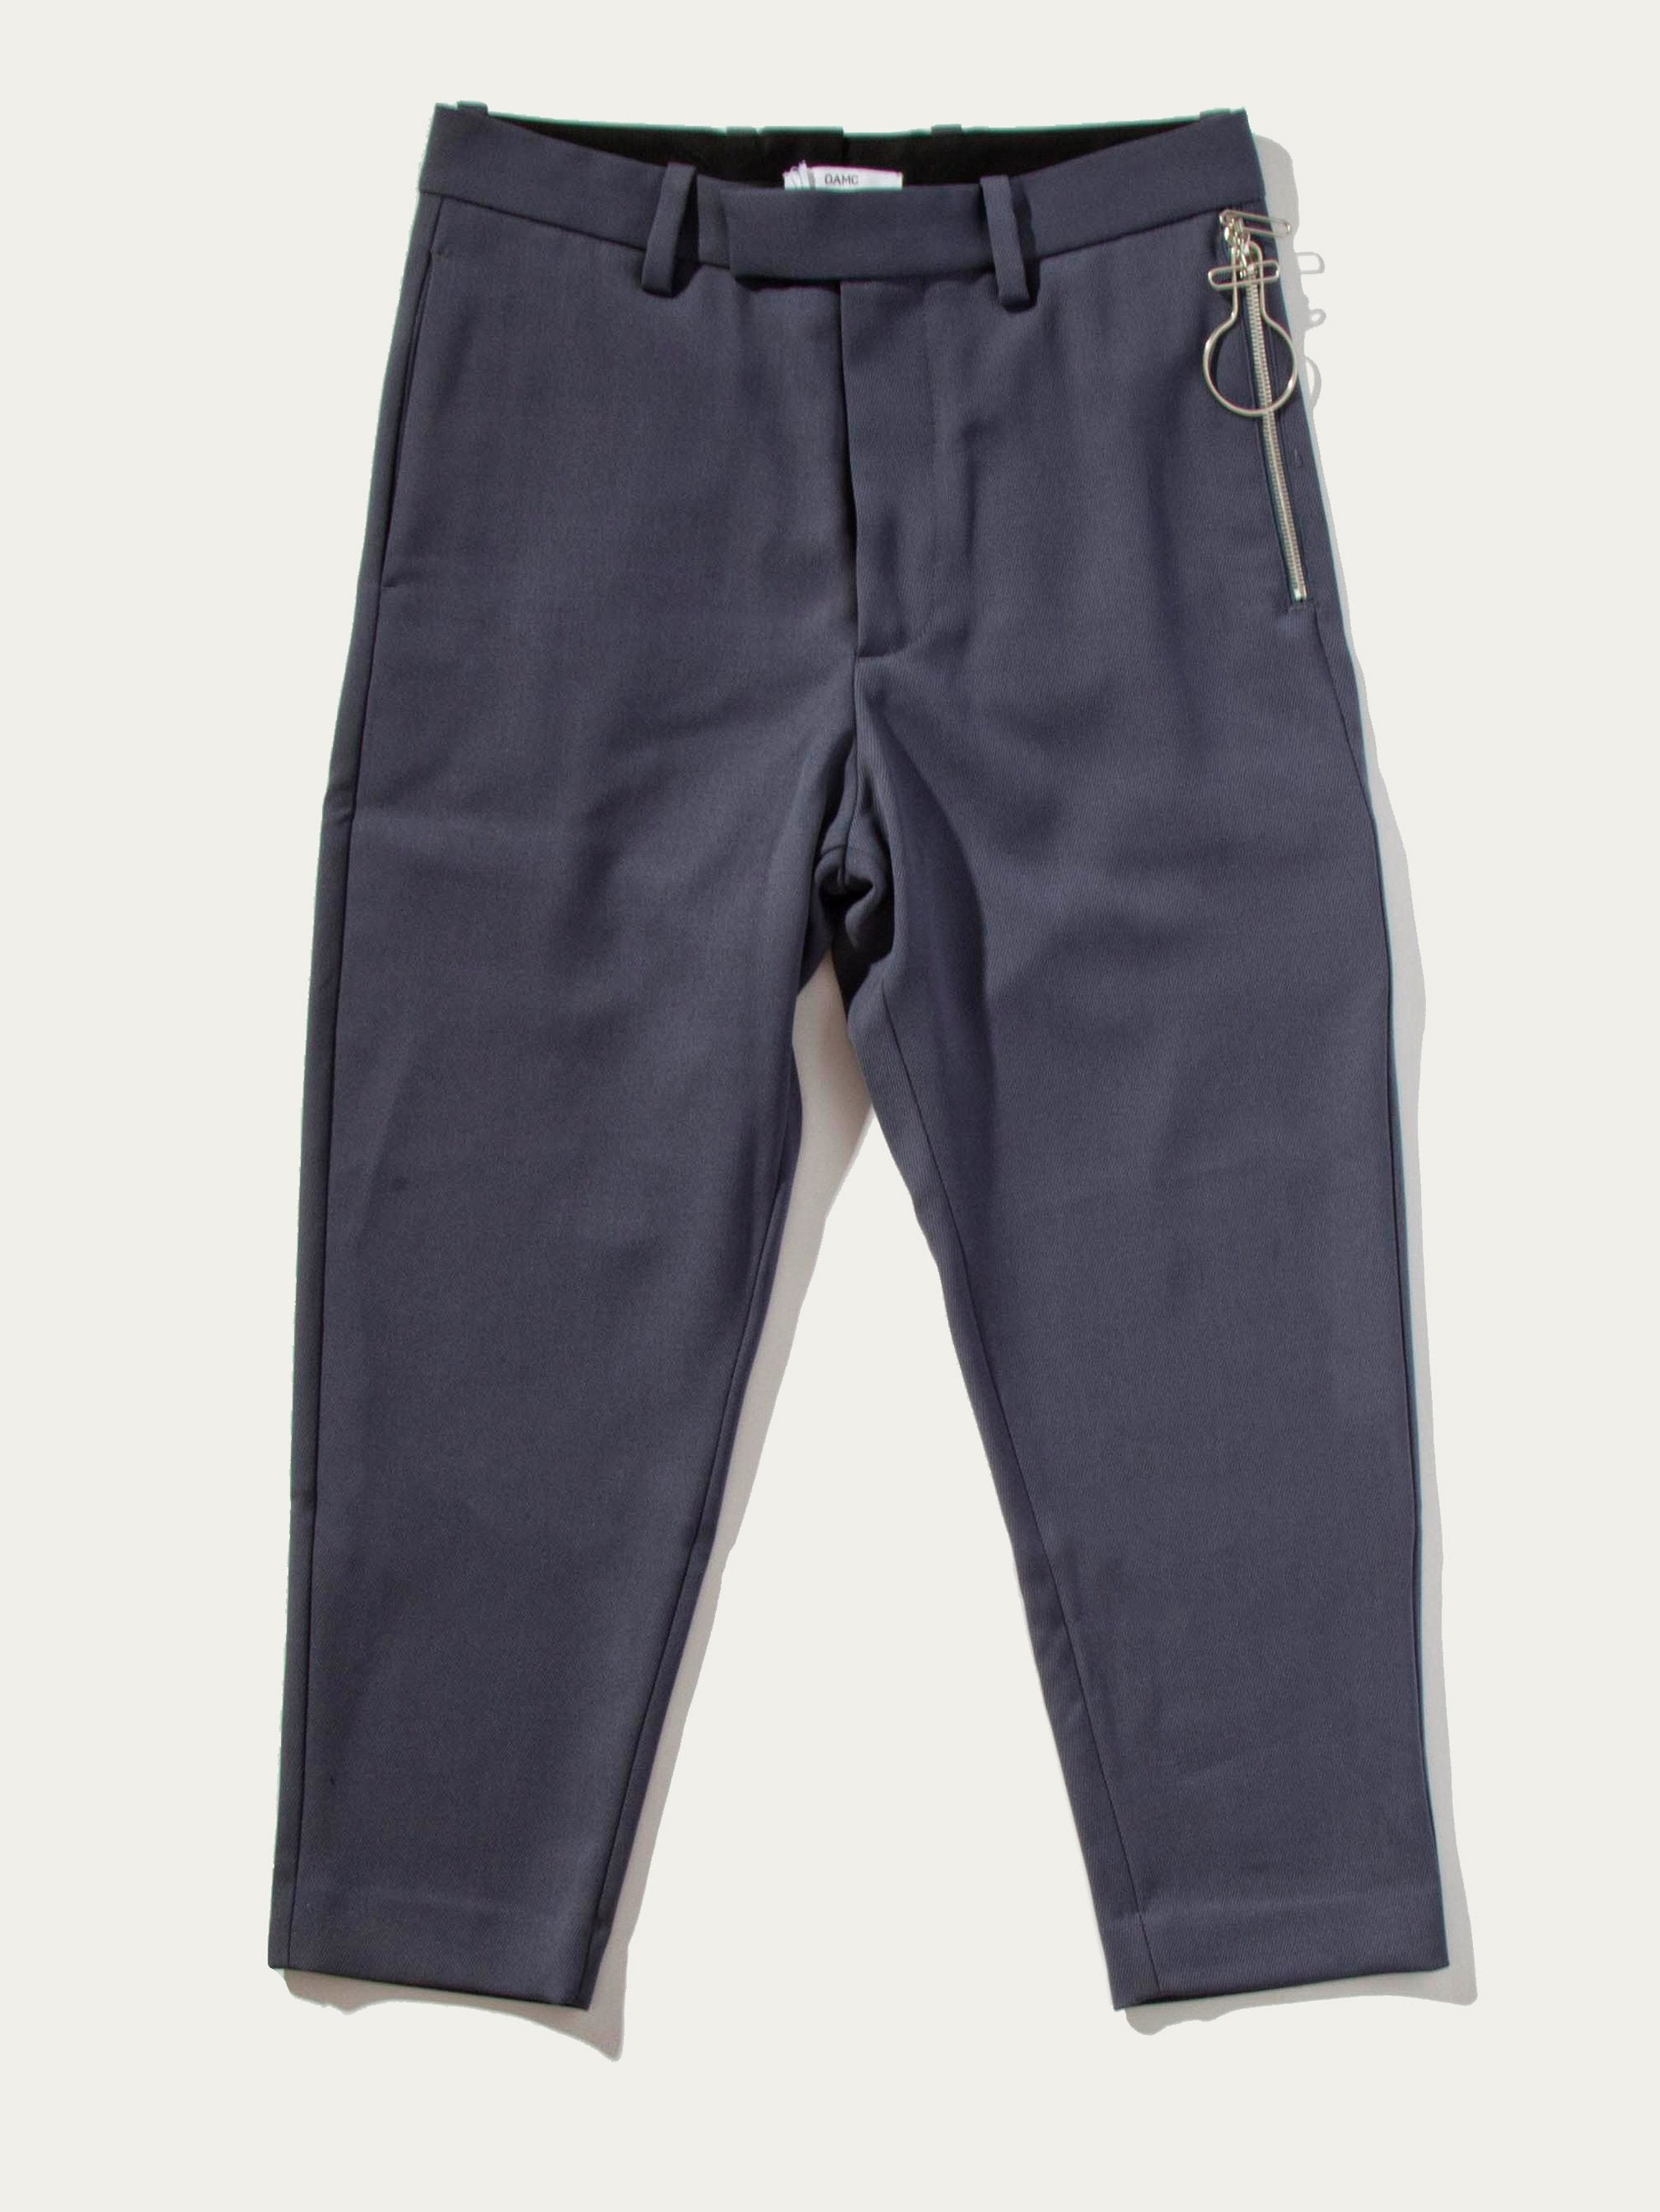 Slate Zip-Lock 2 Button Suit Pant 1